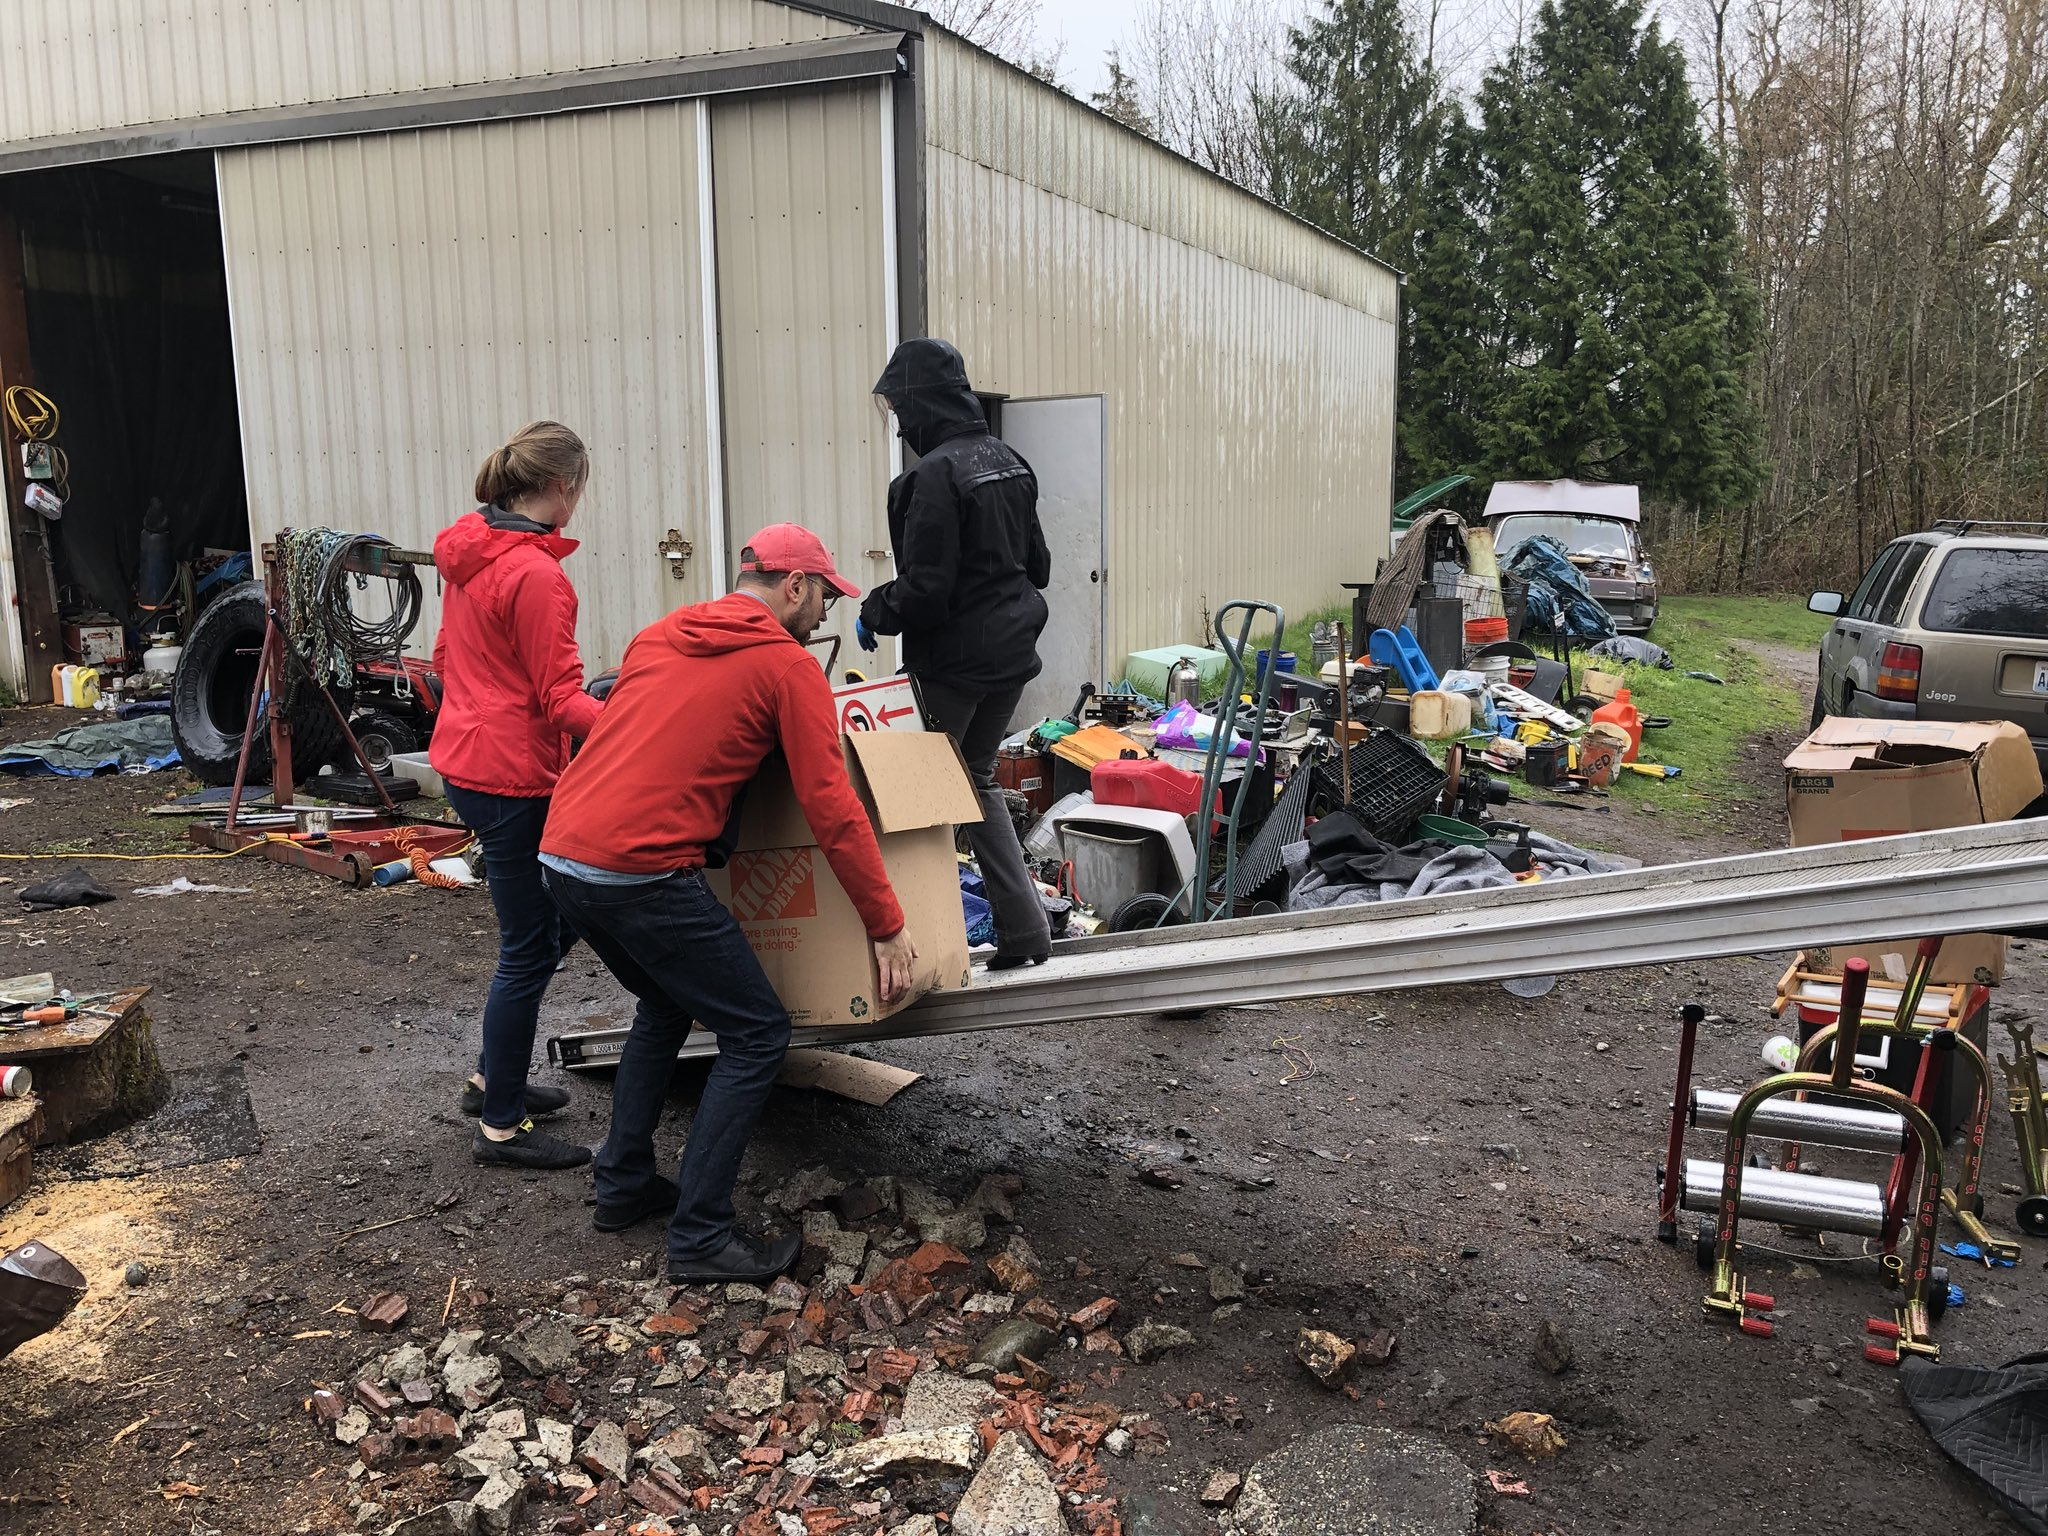 The King County Sheriff's Office investigates after a stolen moving truck was found. (Photo: KOMO News)